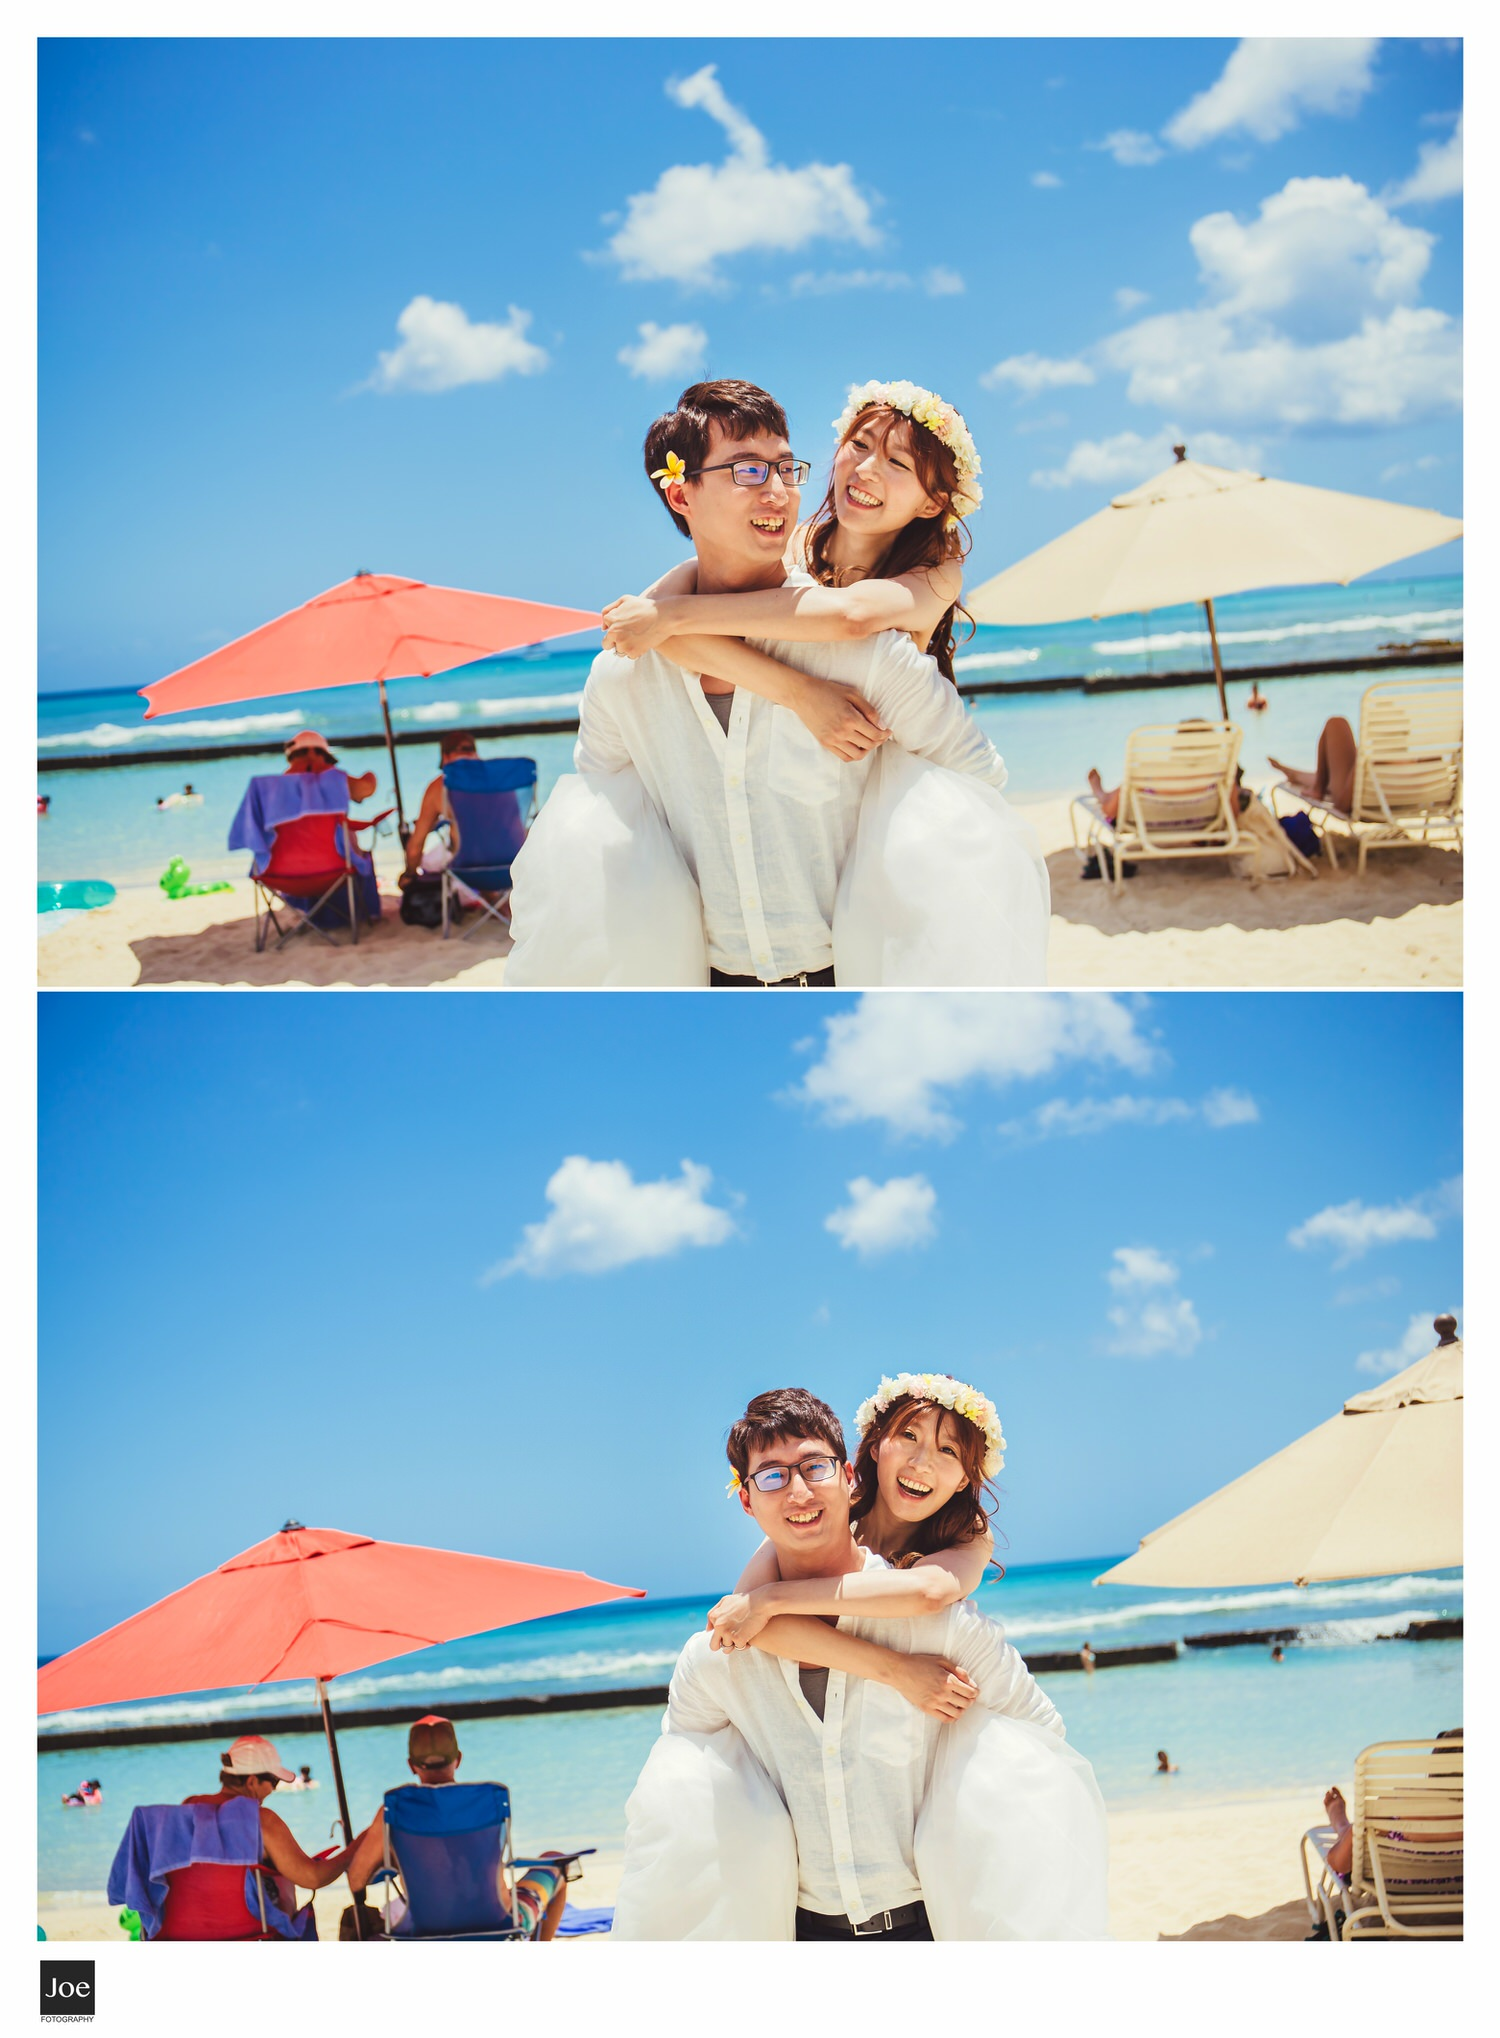 084-waikiki-beach-hawaii-pre-wedding-tiffany-tony-joe-fotography.jpg